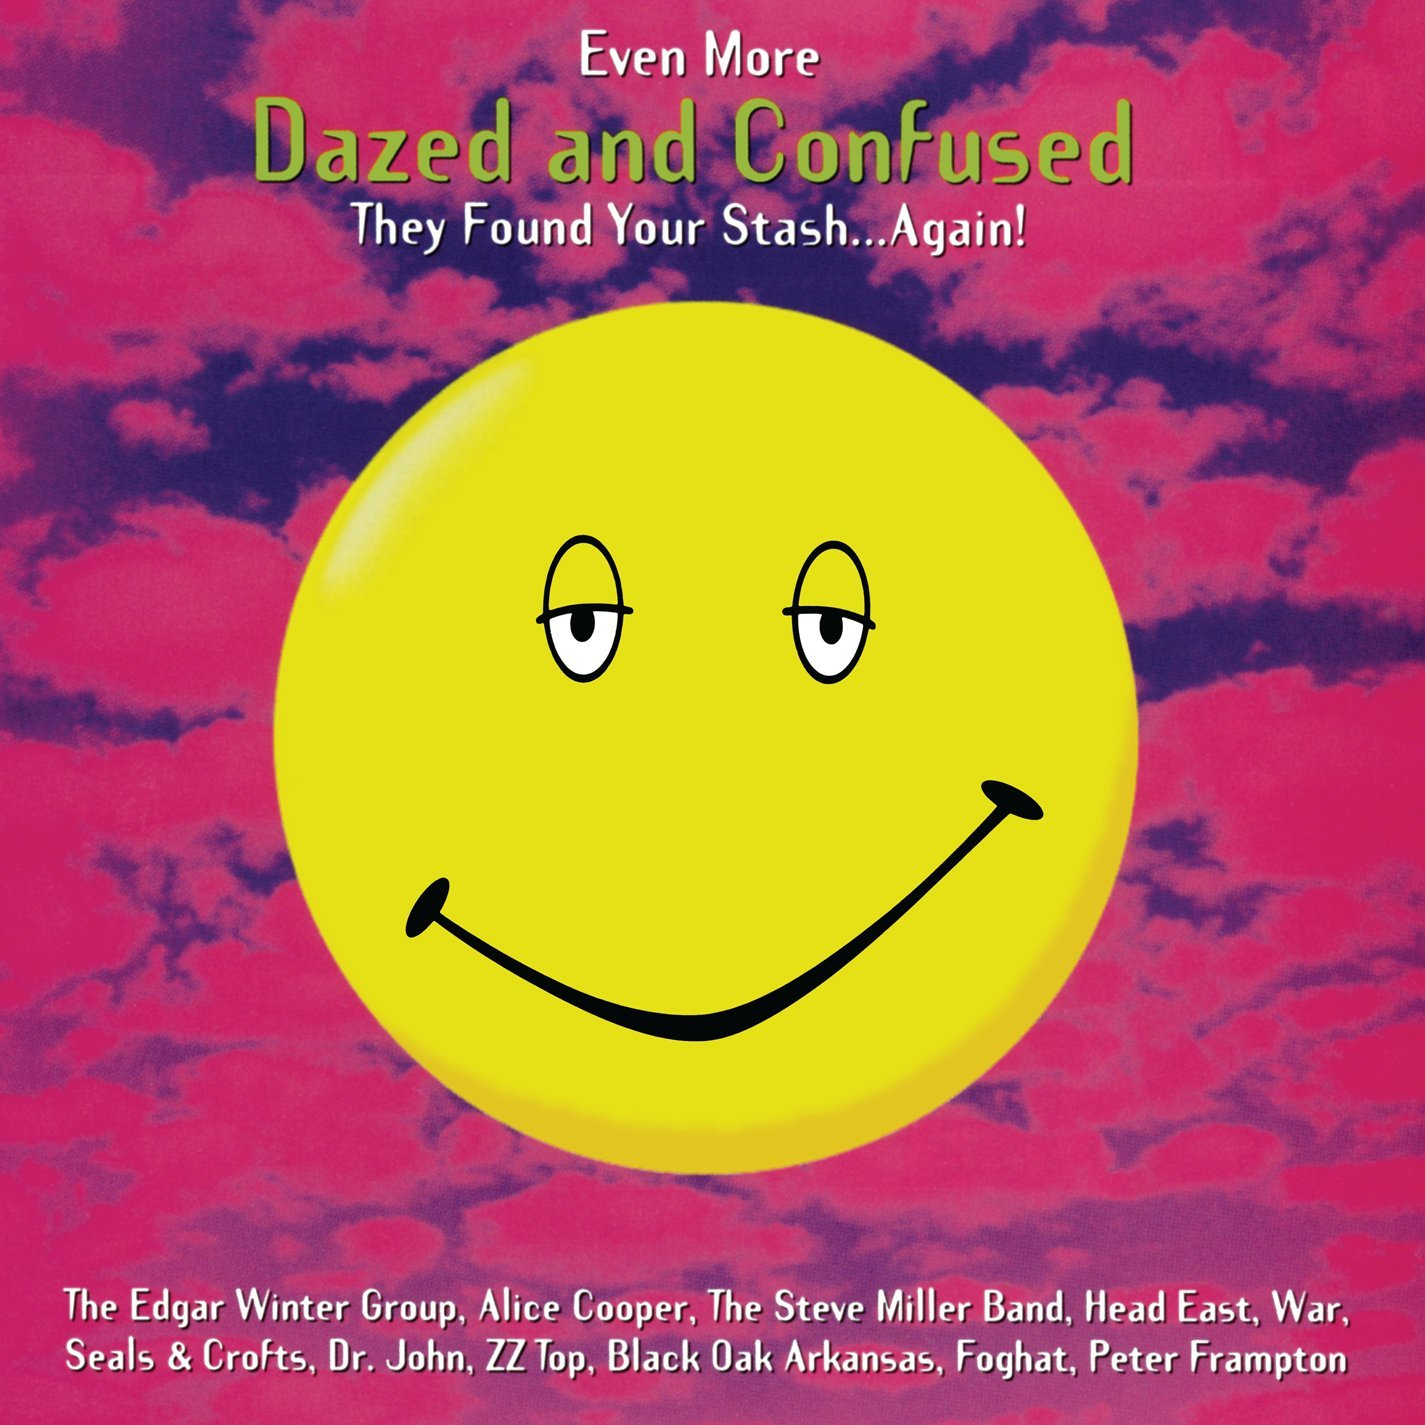 Vinilo : Various Artists - Even More Dazed & Confused: Music From Motion Picture (Purple, Limited Edition, Colored Vinyl, Pink)